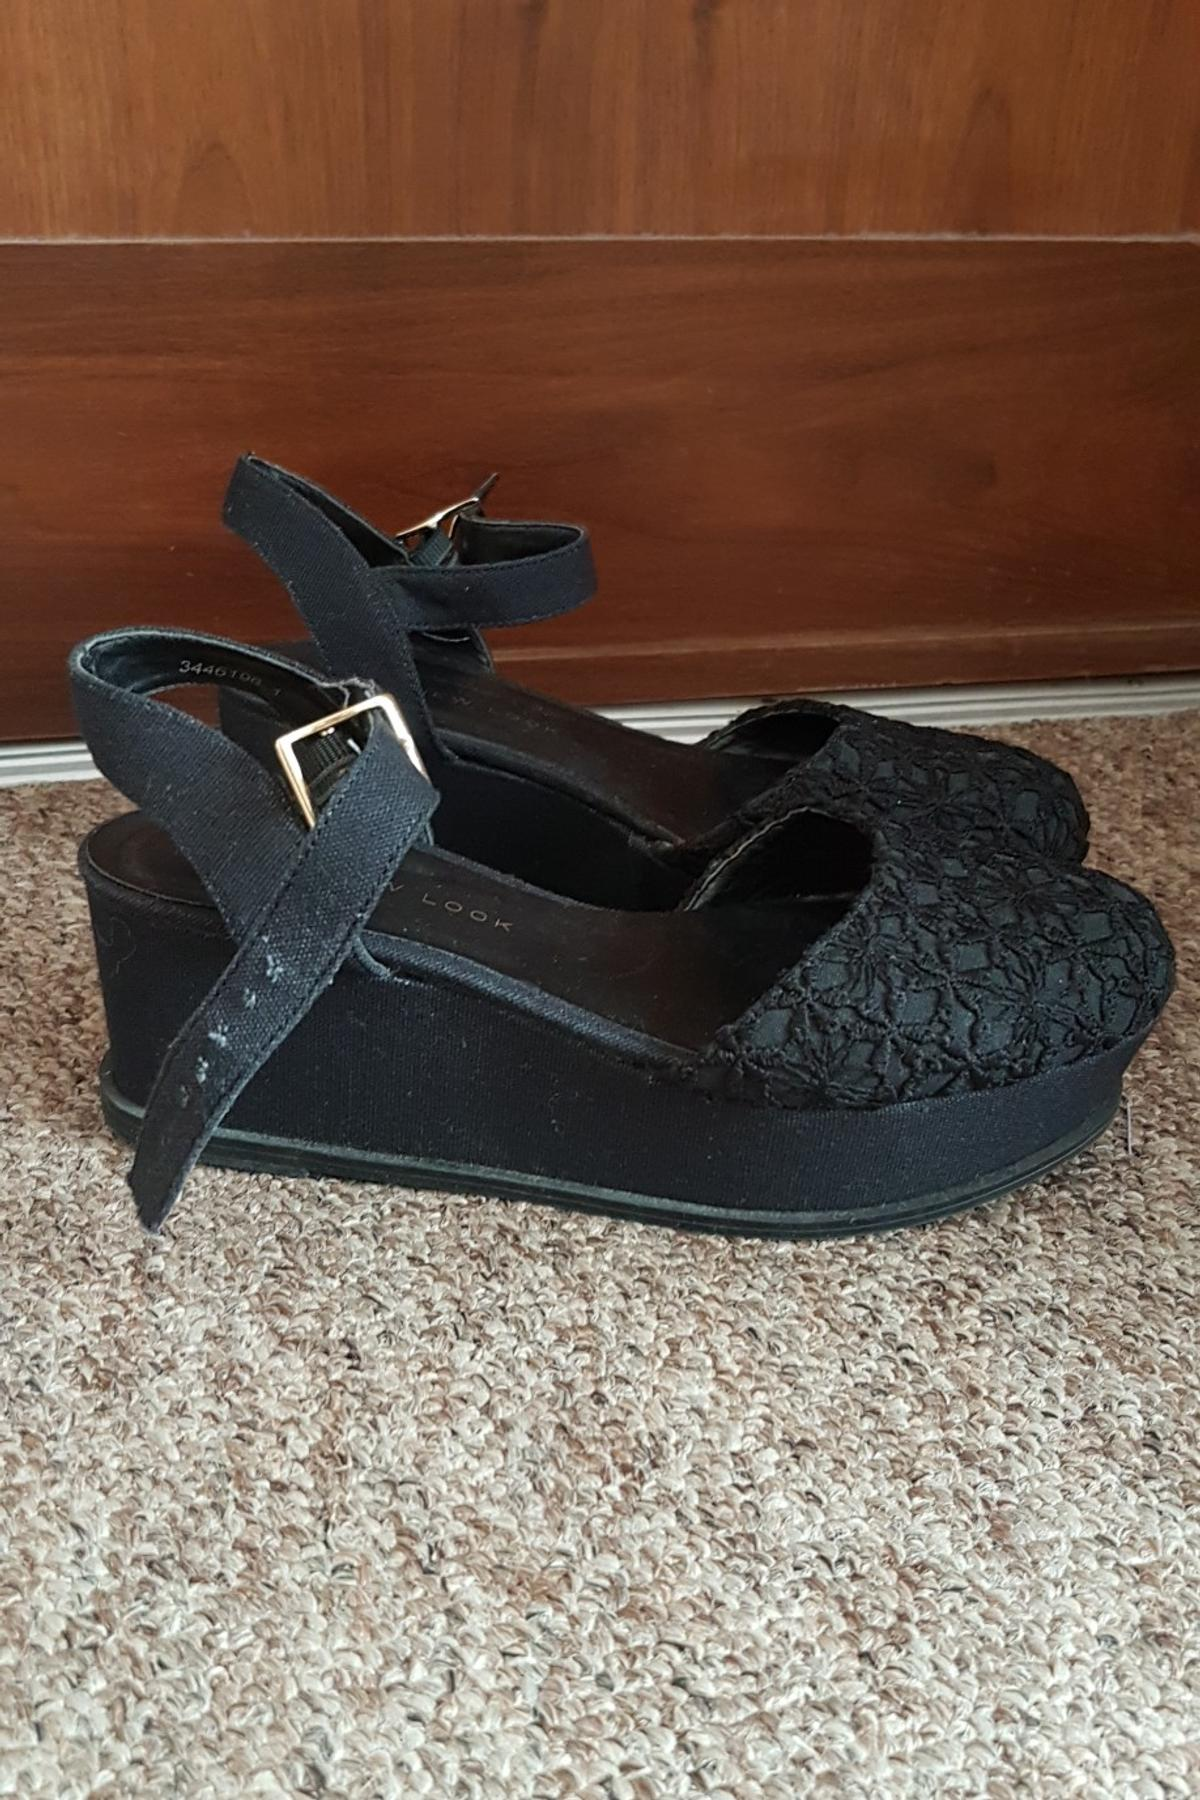 Bootsamp; Look Brent New Sandals Nw10 £25 Wedge In 00 3 For Size IbyY6gvf7